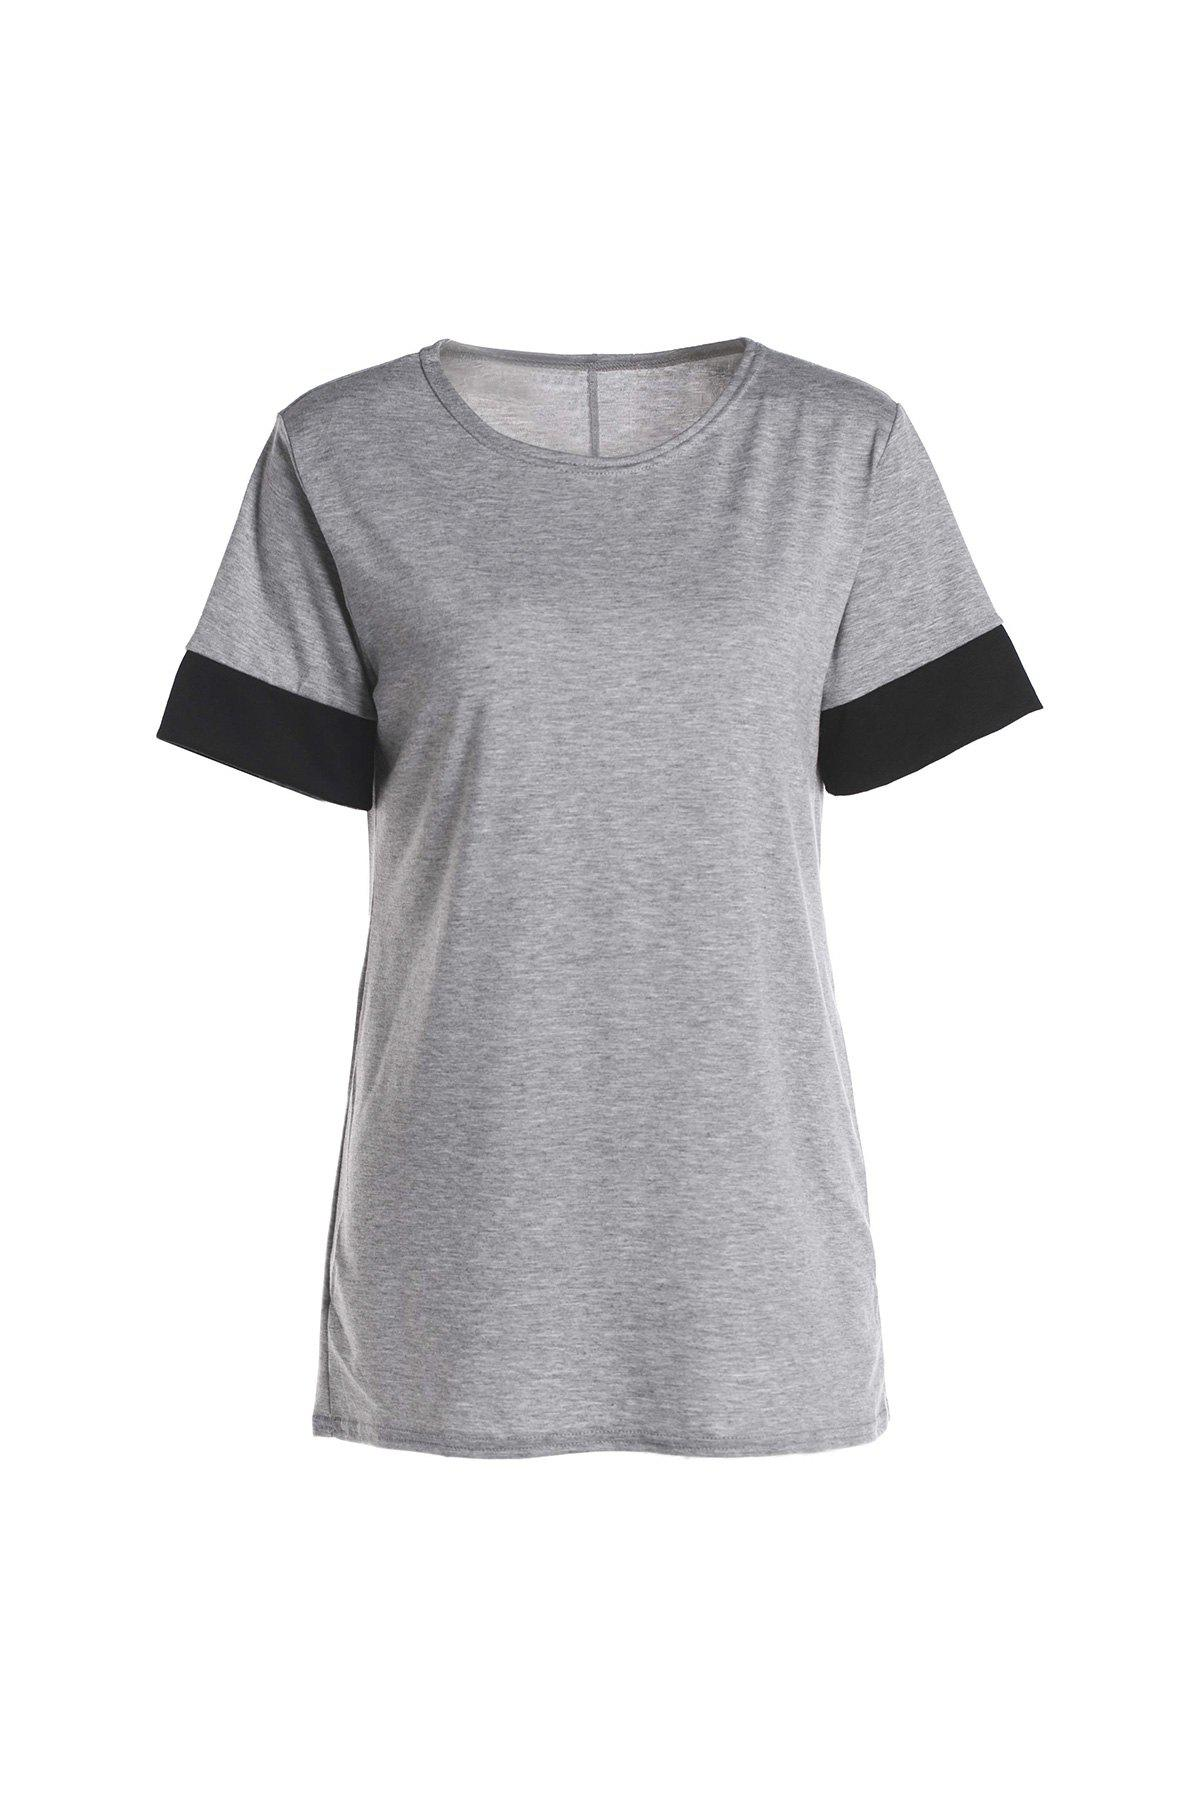 Simple Short Sleeve Scoop Collar Hit Color Women's T-Shirt - LIGHT GRAY S